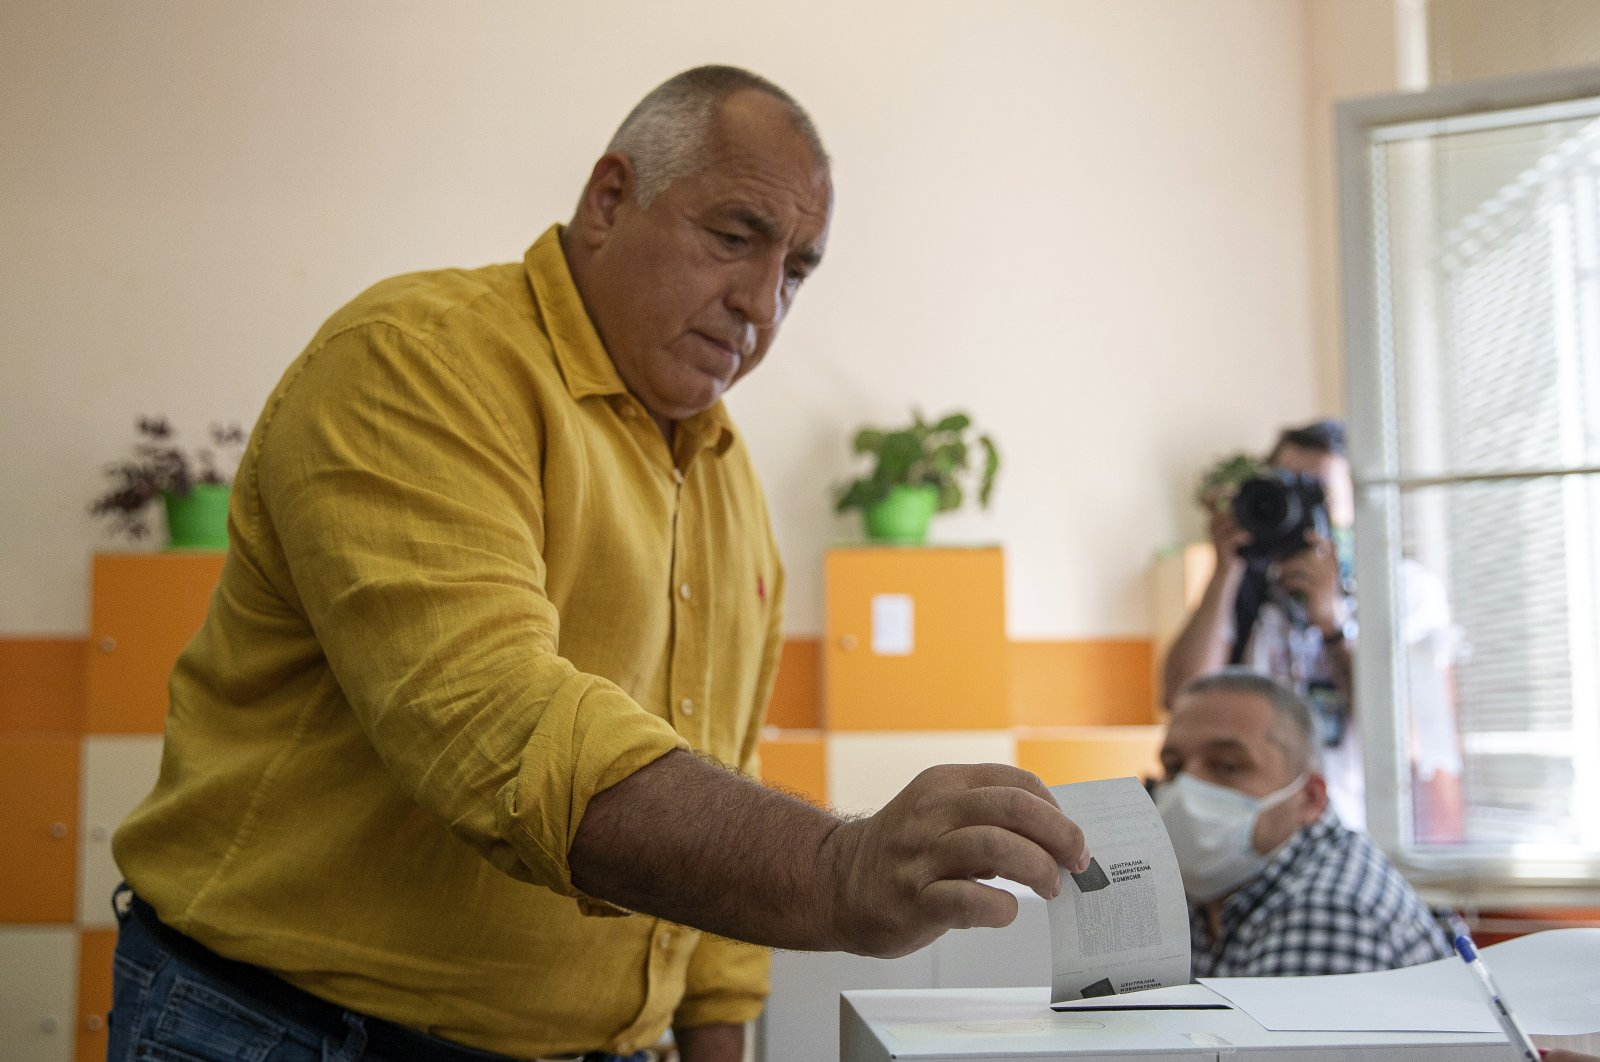 Bulgarian former prime minister Boyko Borissov casts his vote during parliamentary elections in the town of Bankya near capital Sofia, Bulgaria on Sunday, July 11, 2021. (AP Photo)